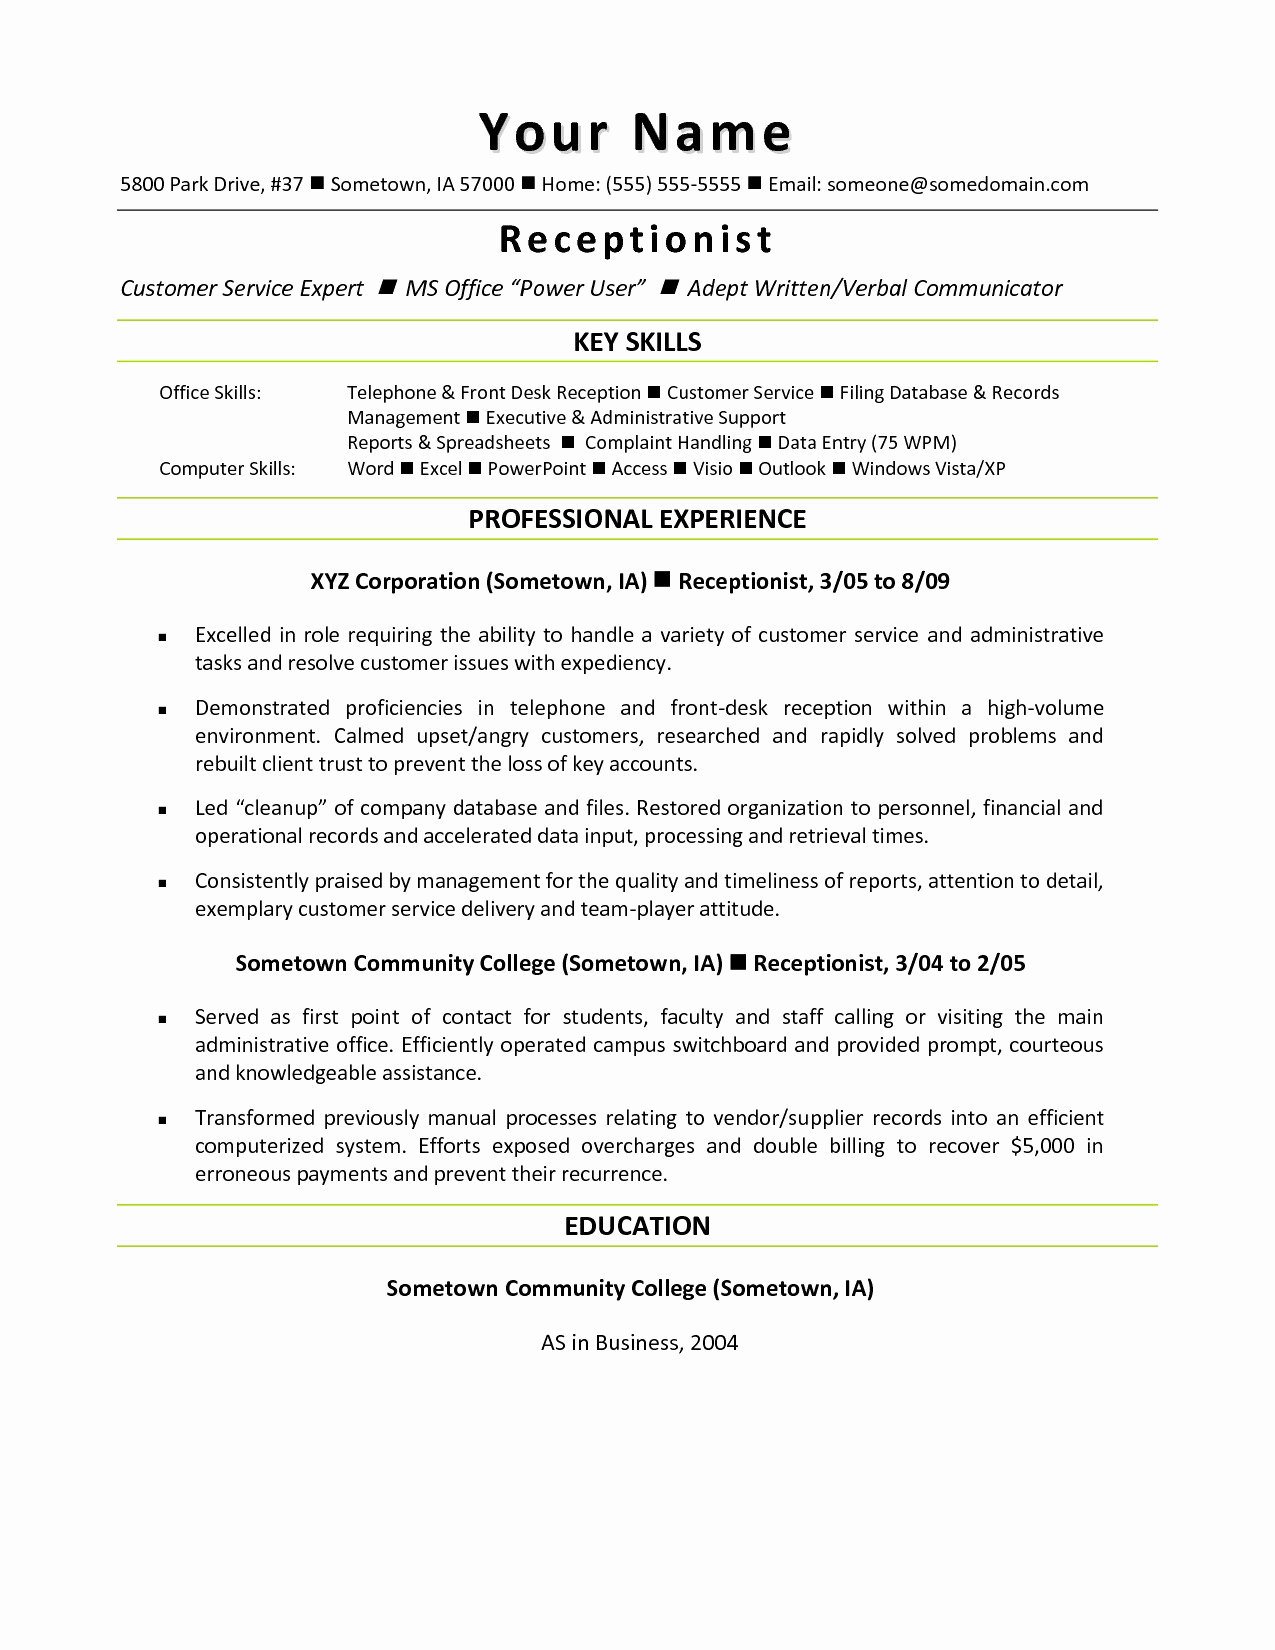 letter of agreement template free Collection-Letter Agreement Template Lovely Sample Cover Letter for Resume Pdf format Letter Agreement Template Awesome Free Resume 0d 16-h